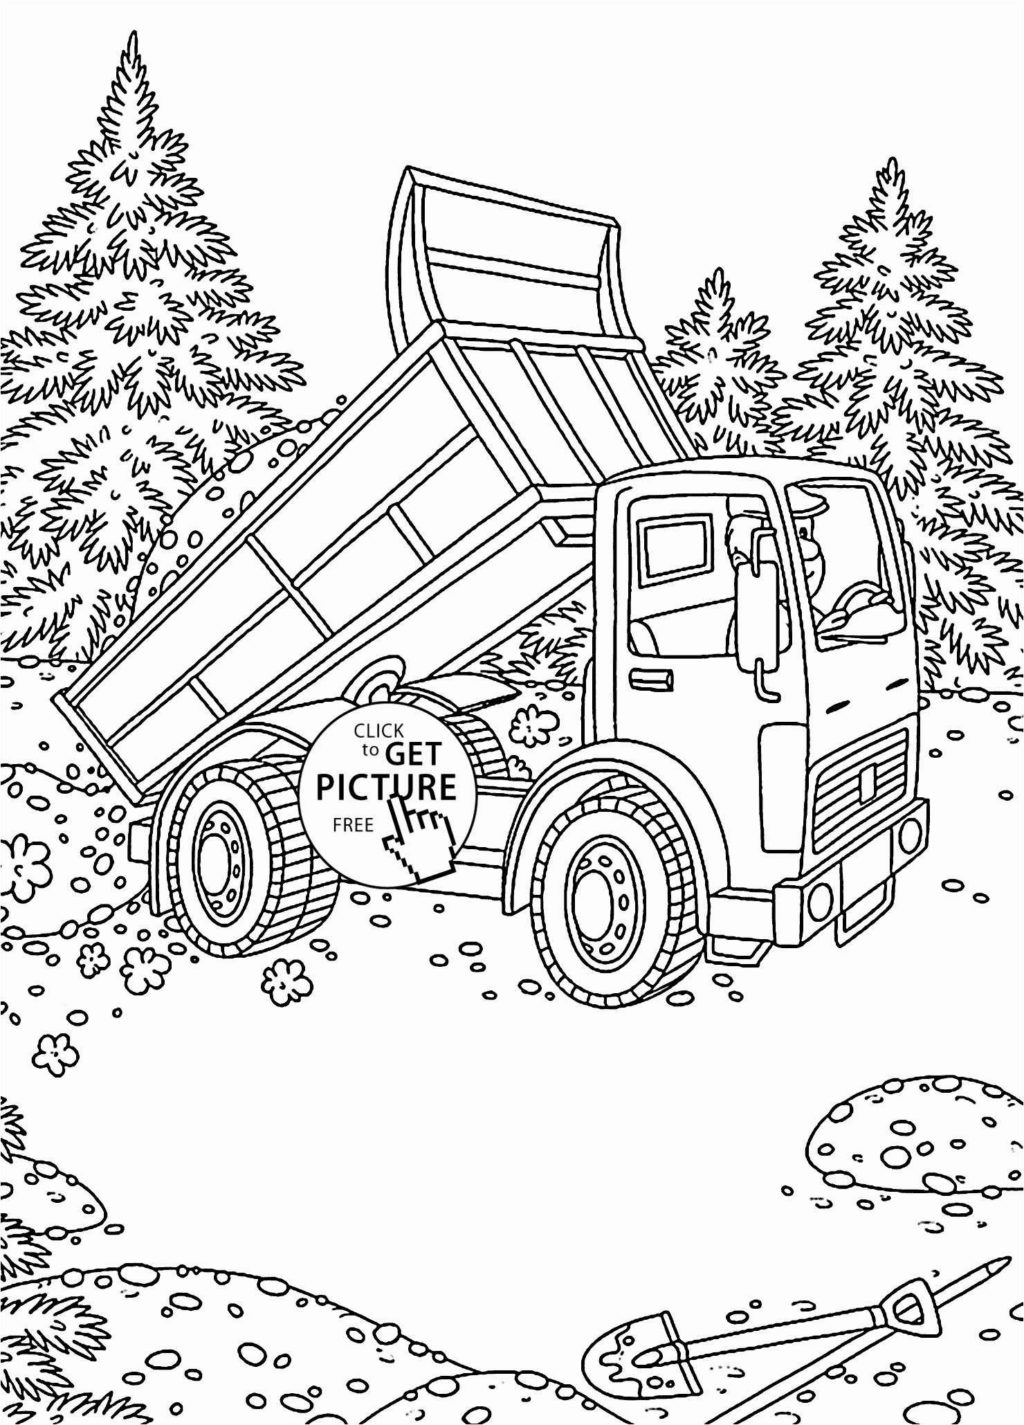 Adult Coloring Pages Trucks Coloring Book World Coloring Book World Crayola Dump Truck Pages